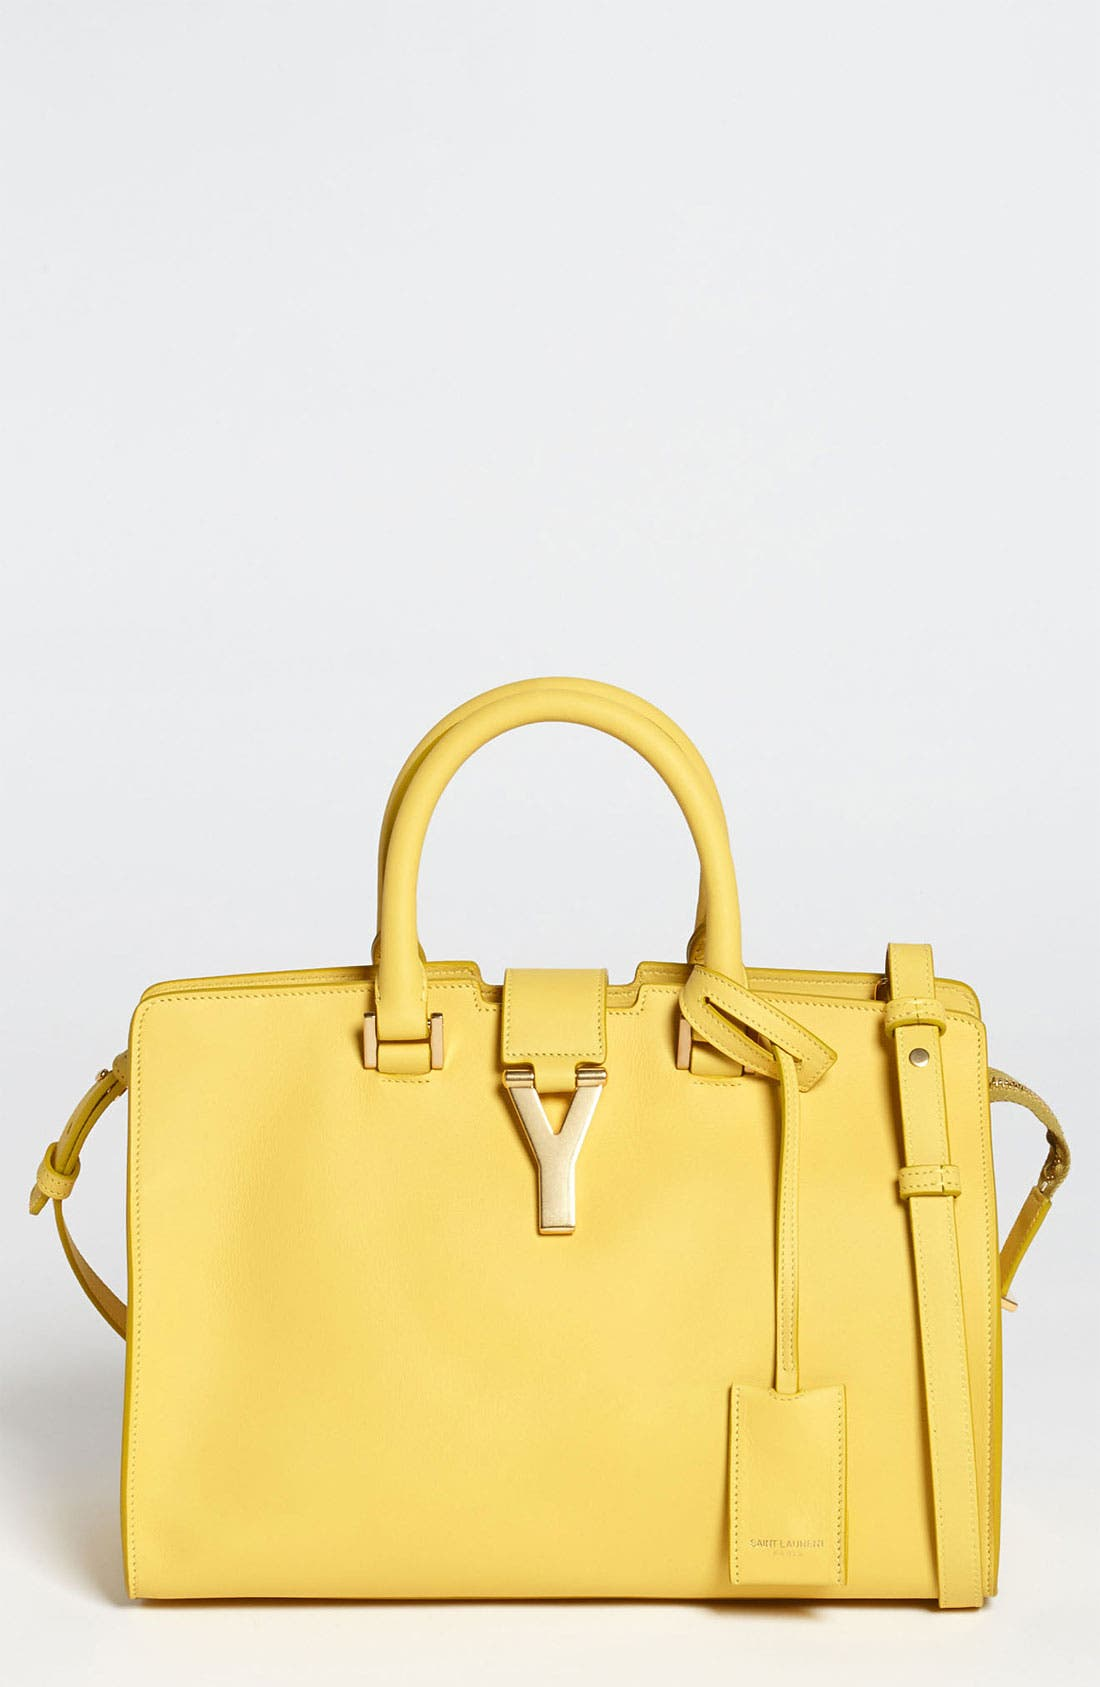 Main Image - Saint Laurent 'Petite Ligne Y' Leather Tote